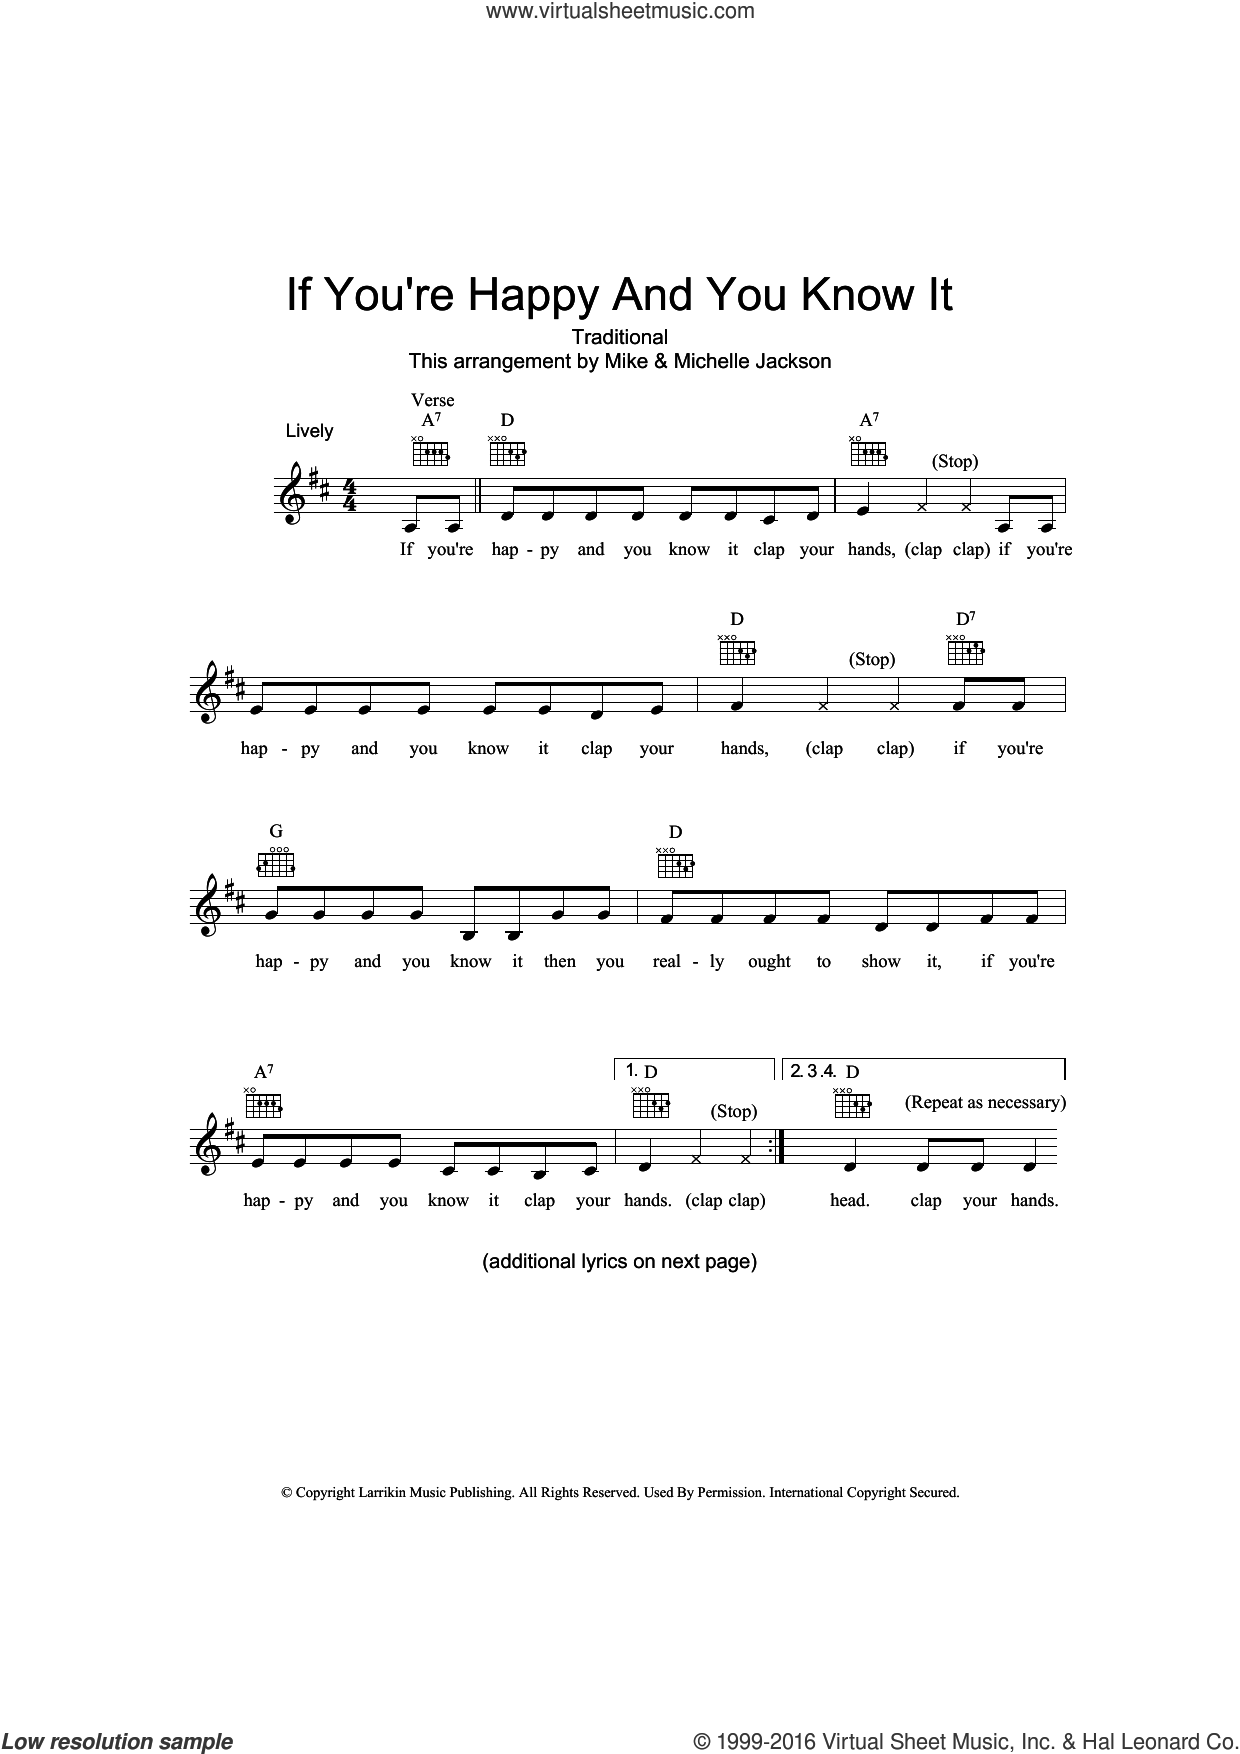 If You're Happy And You Know It sheet music for voice and other instruments (fake book), intermediate skill level